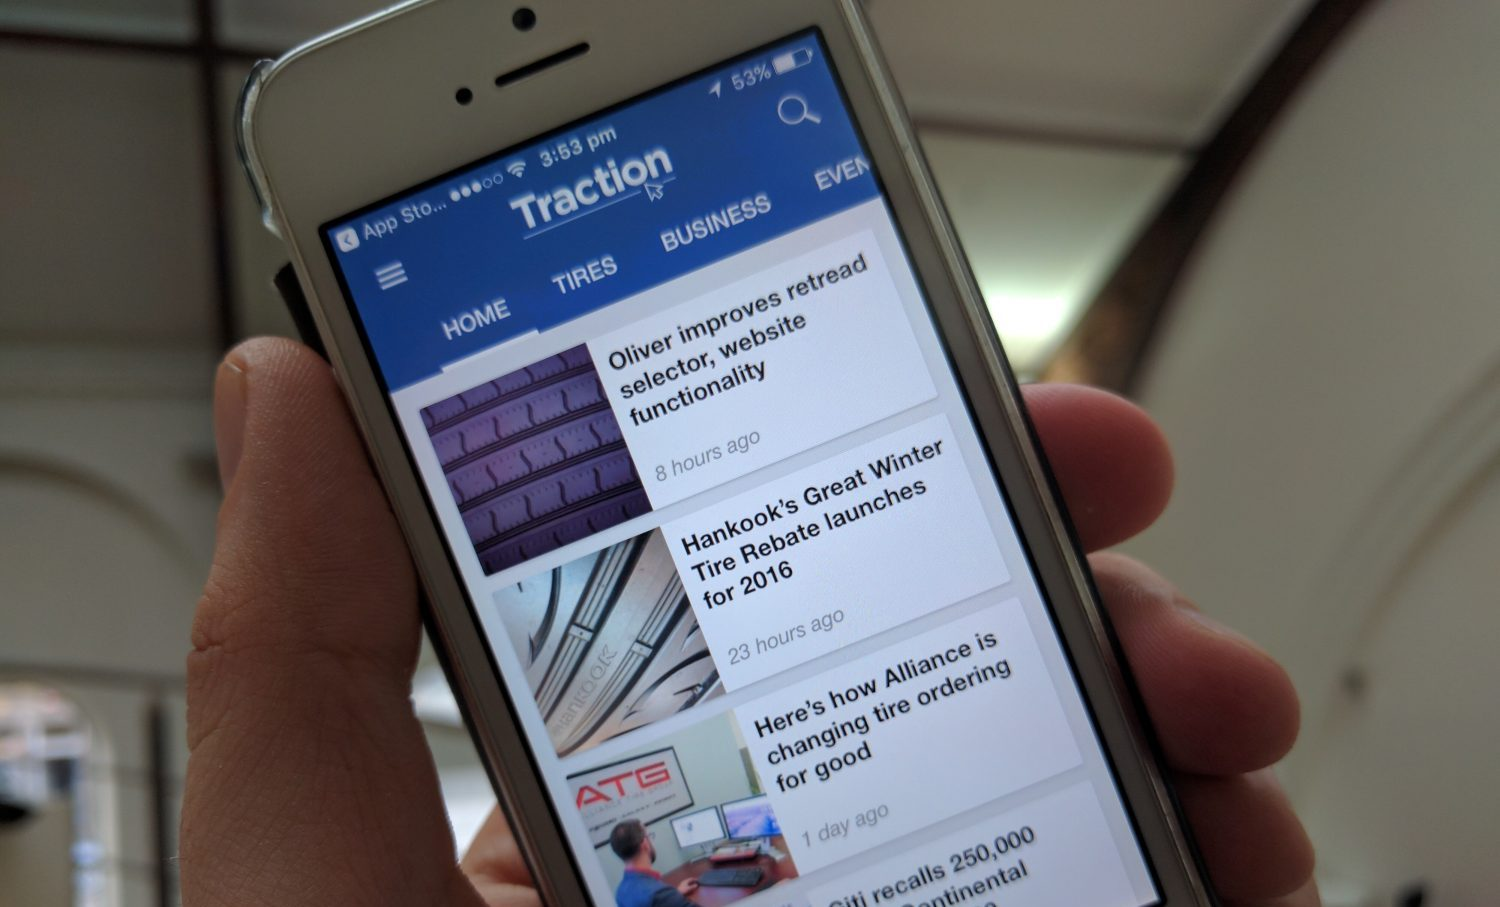 Traction App